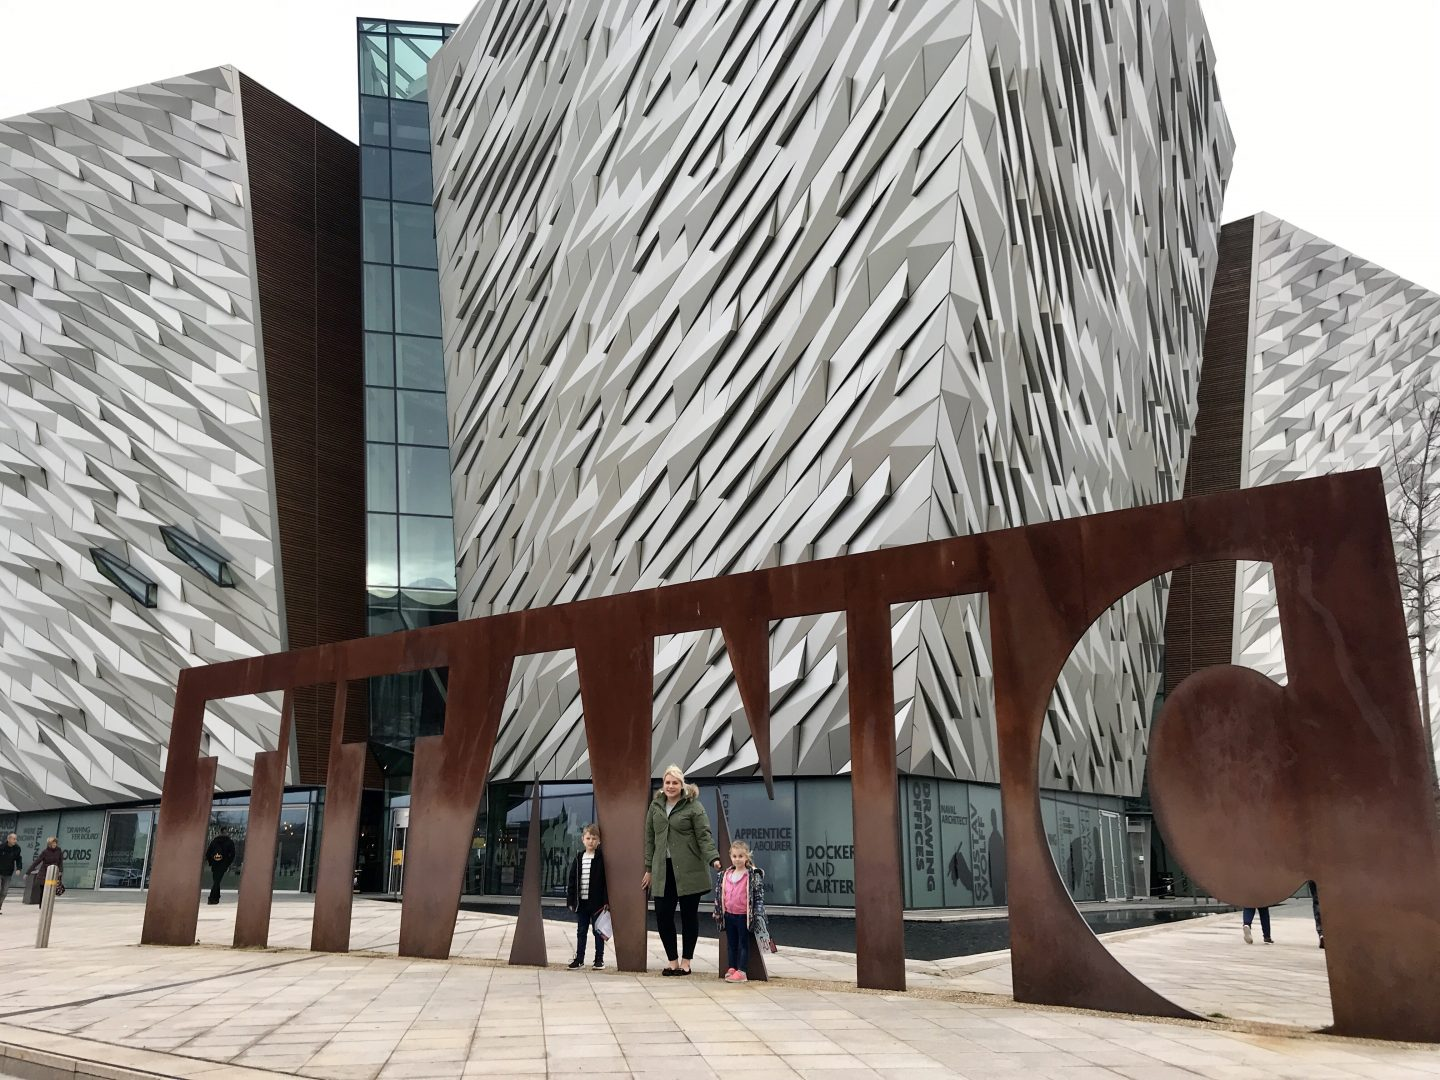 Our Day at the Titanic Experience & SS Nomadic in Belfast